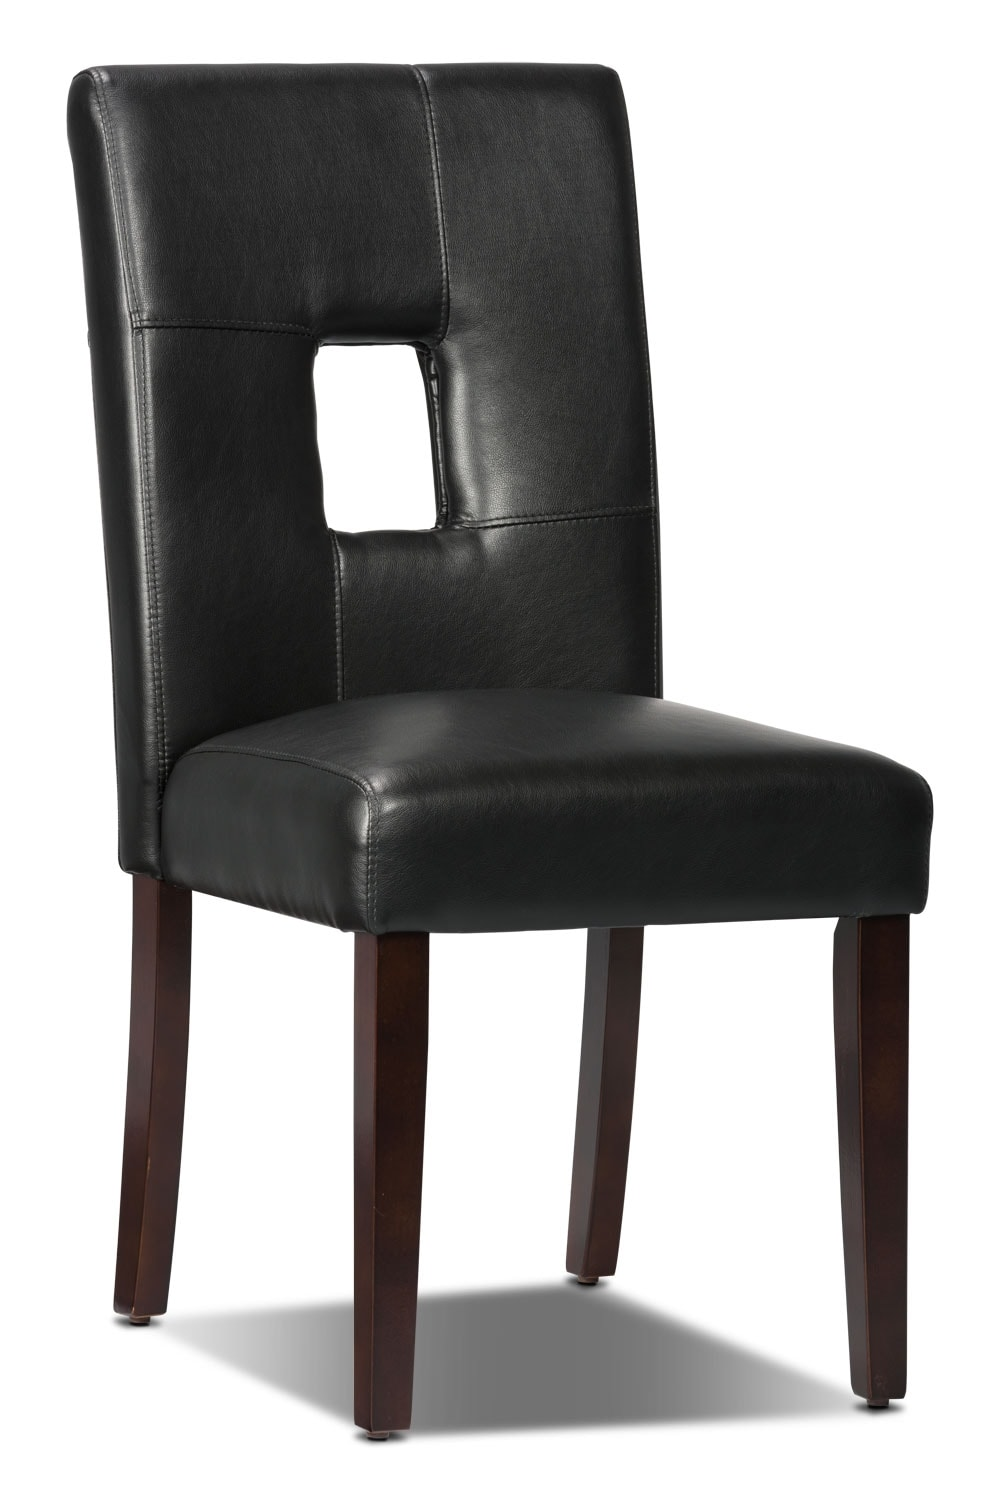 McKena Faux Leather Dining Chair – Black